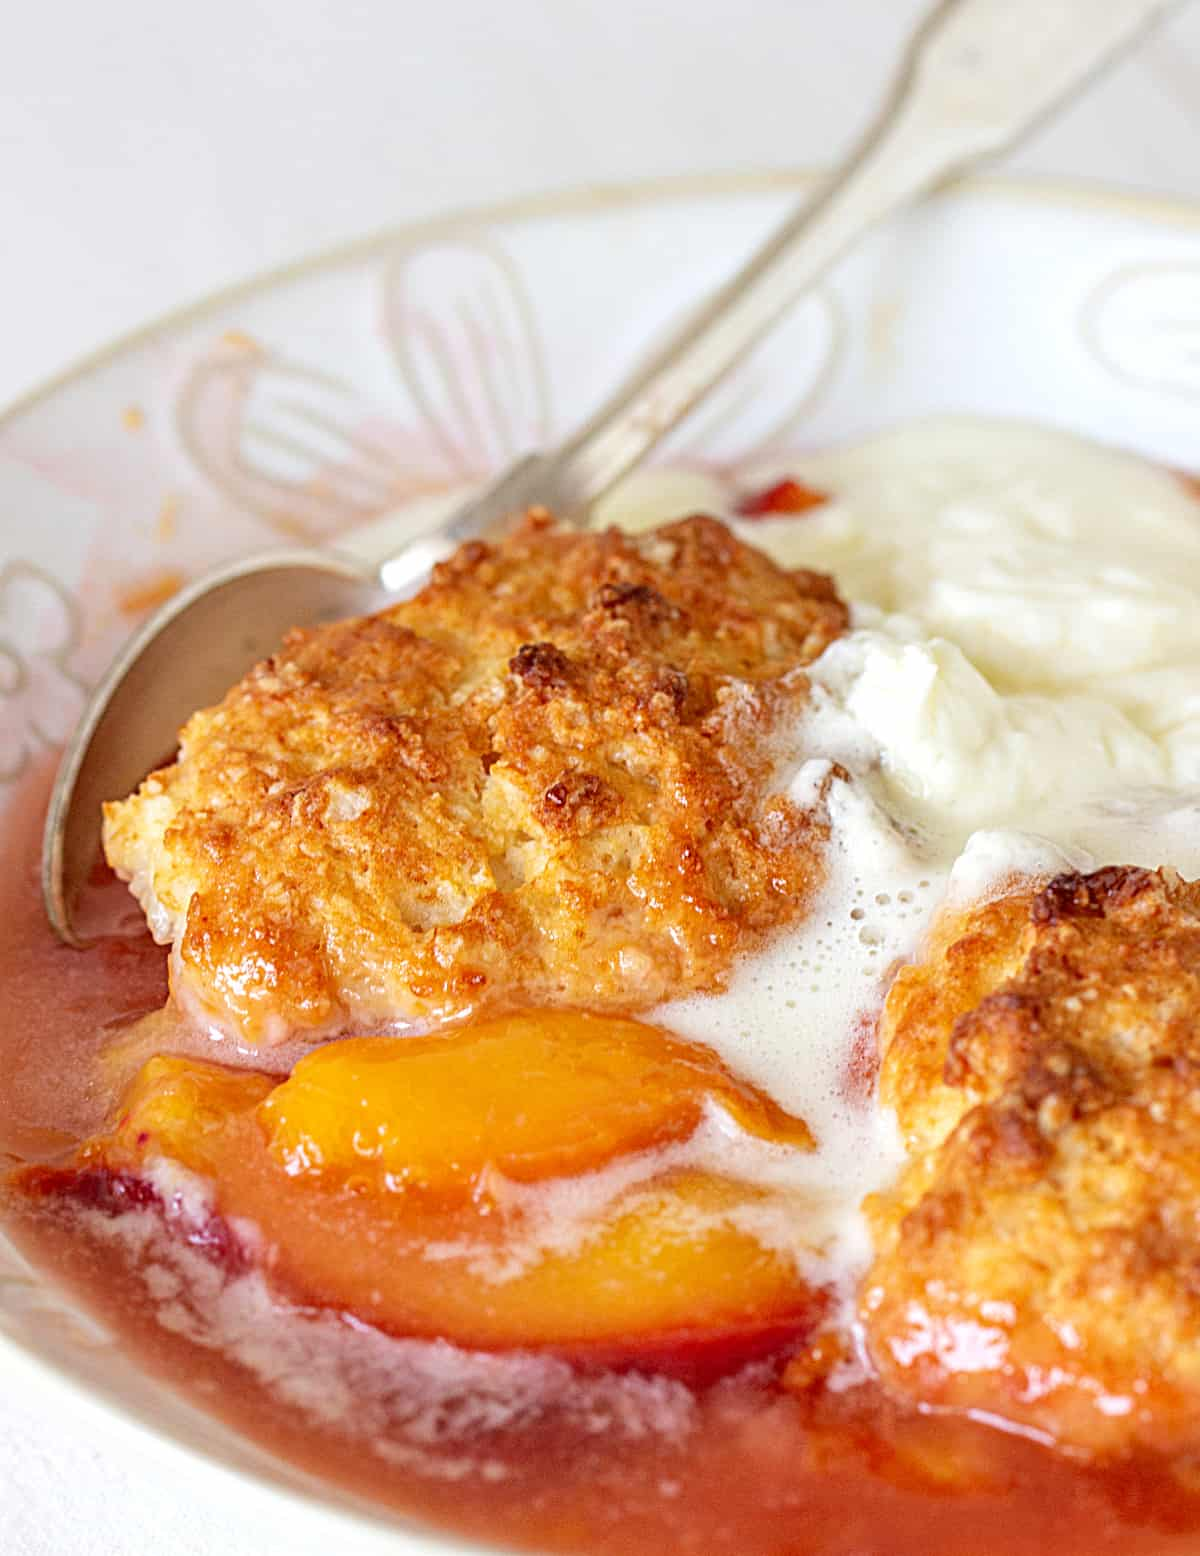 White bowl with juicy peach cobbler, scoop of ice cream, silver spoon